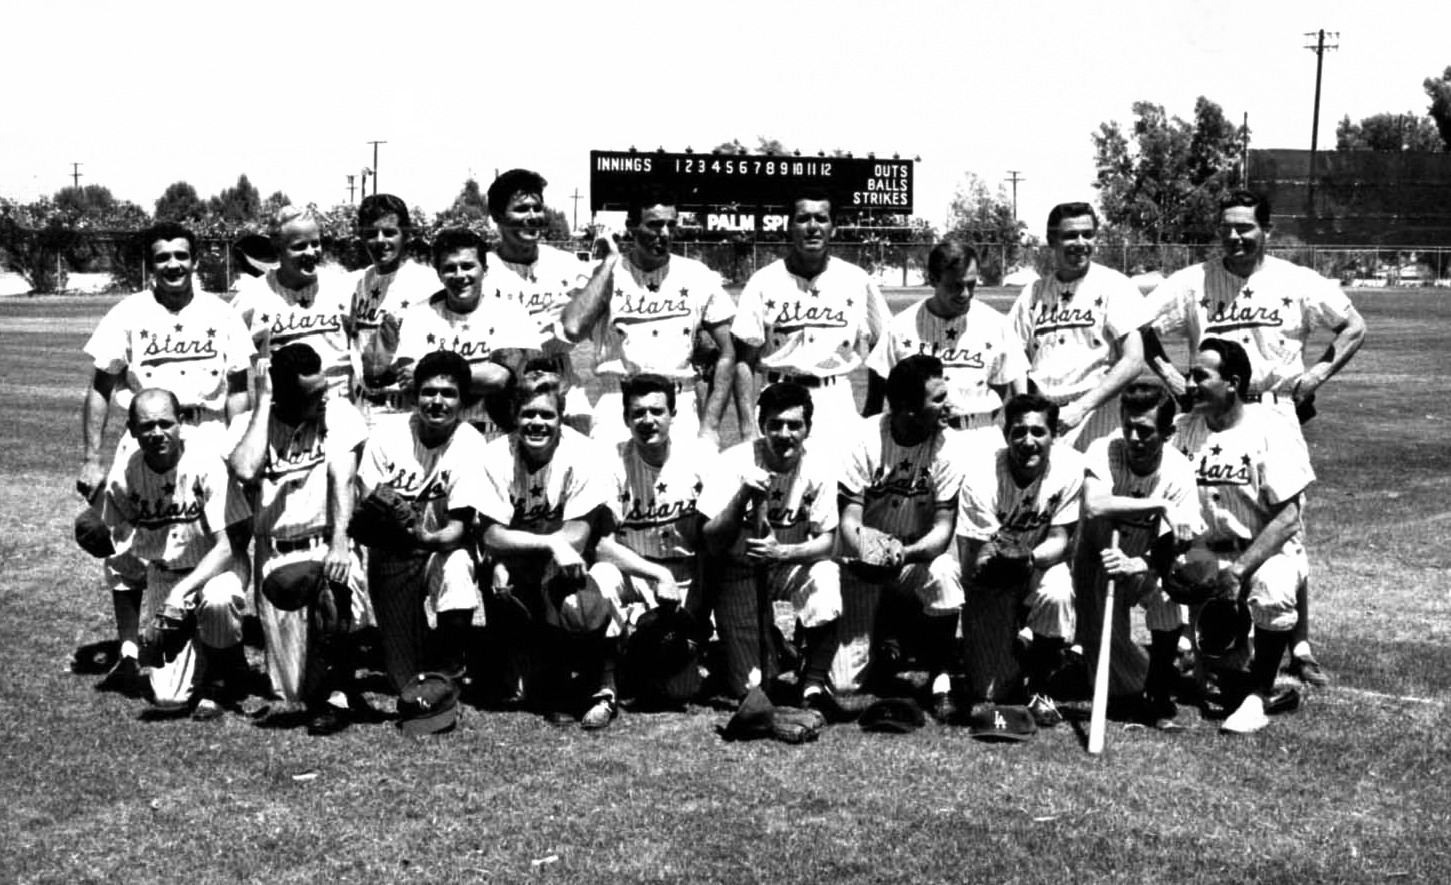 Hollywood Stars team. Dvore is front row holding bat 6th from left. Standing behind Dvore actor James Garner and Max Baer Jr. 5th form left.